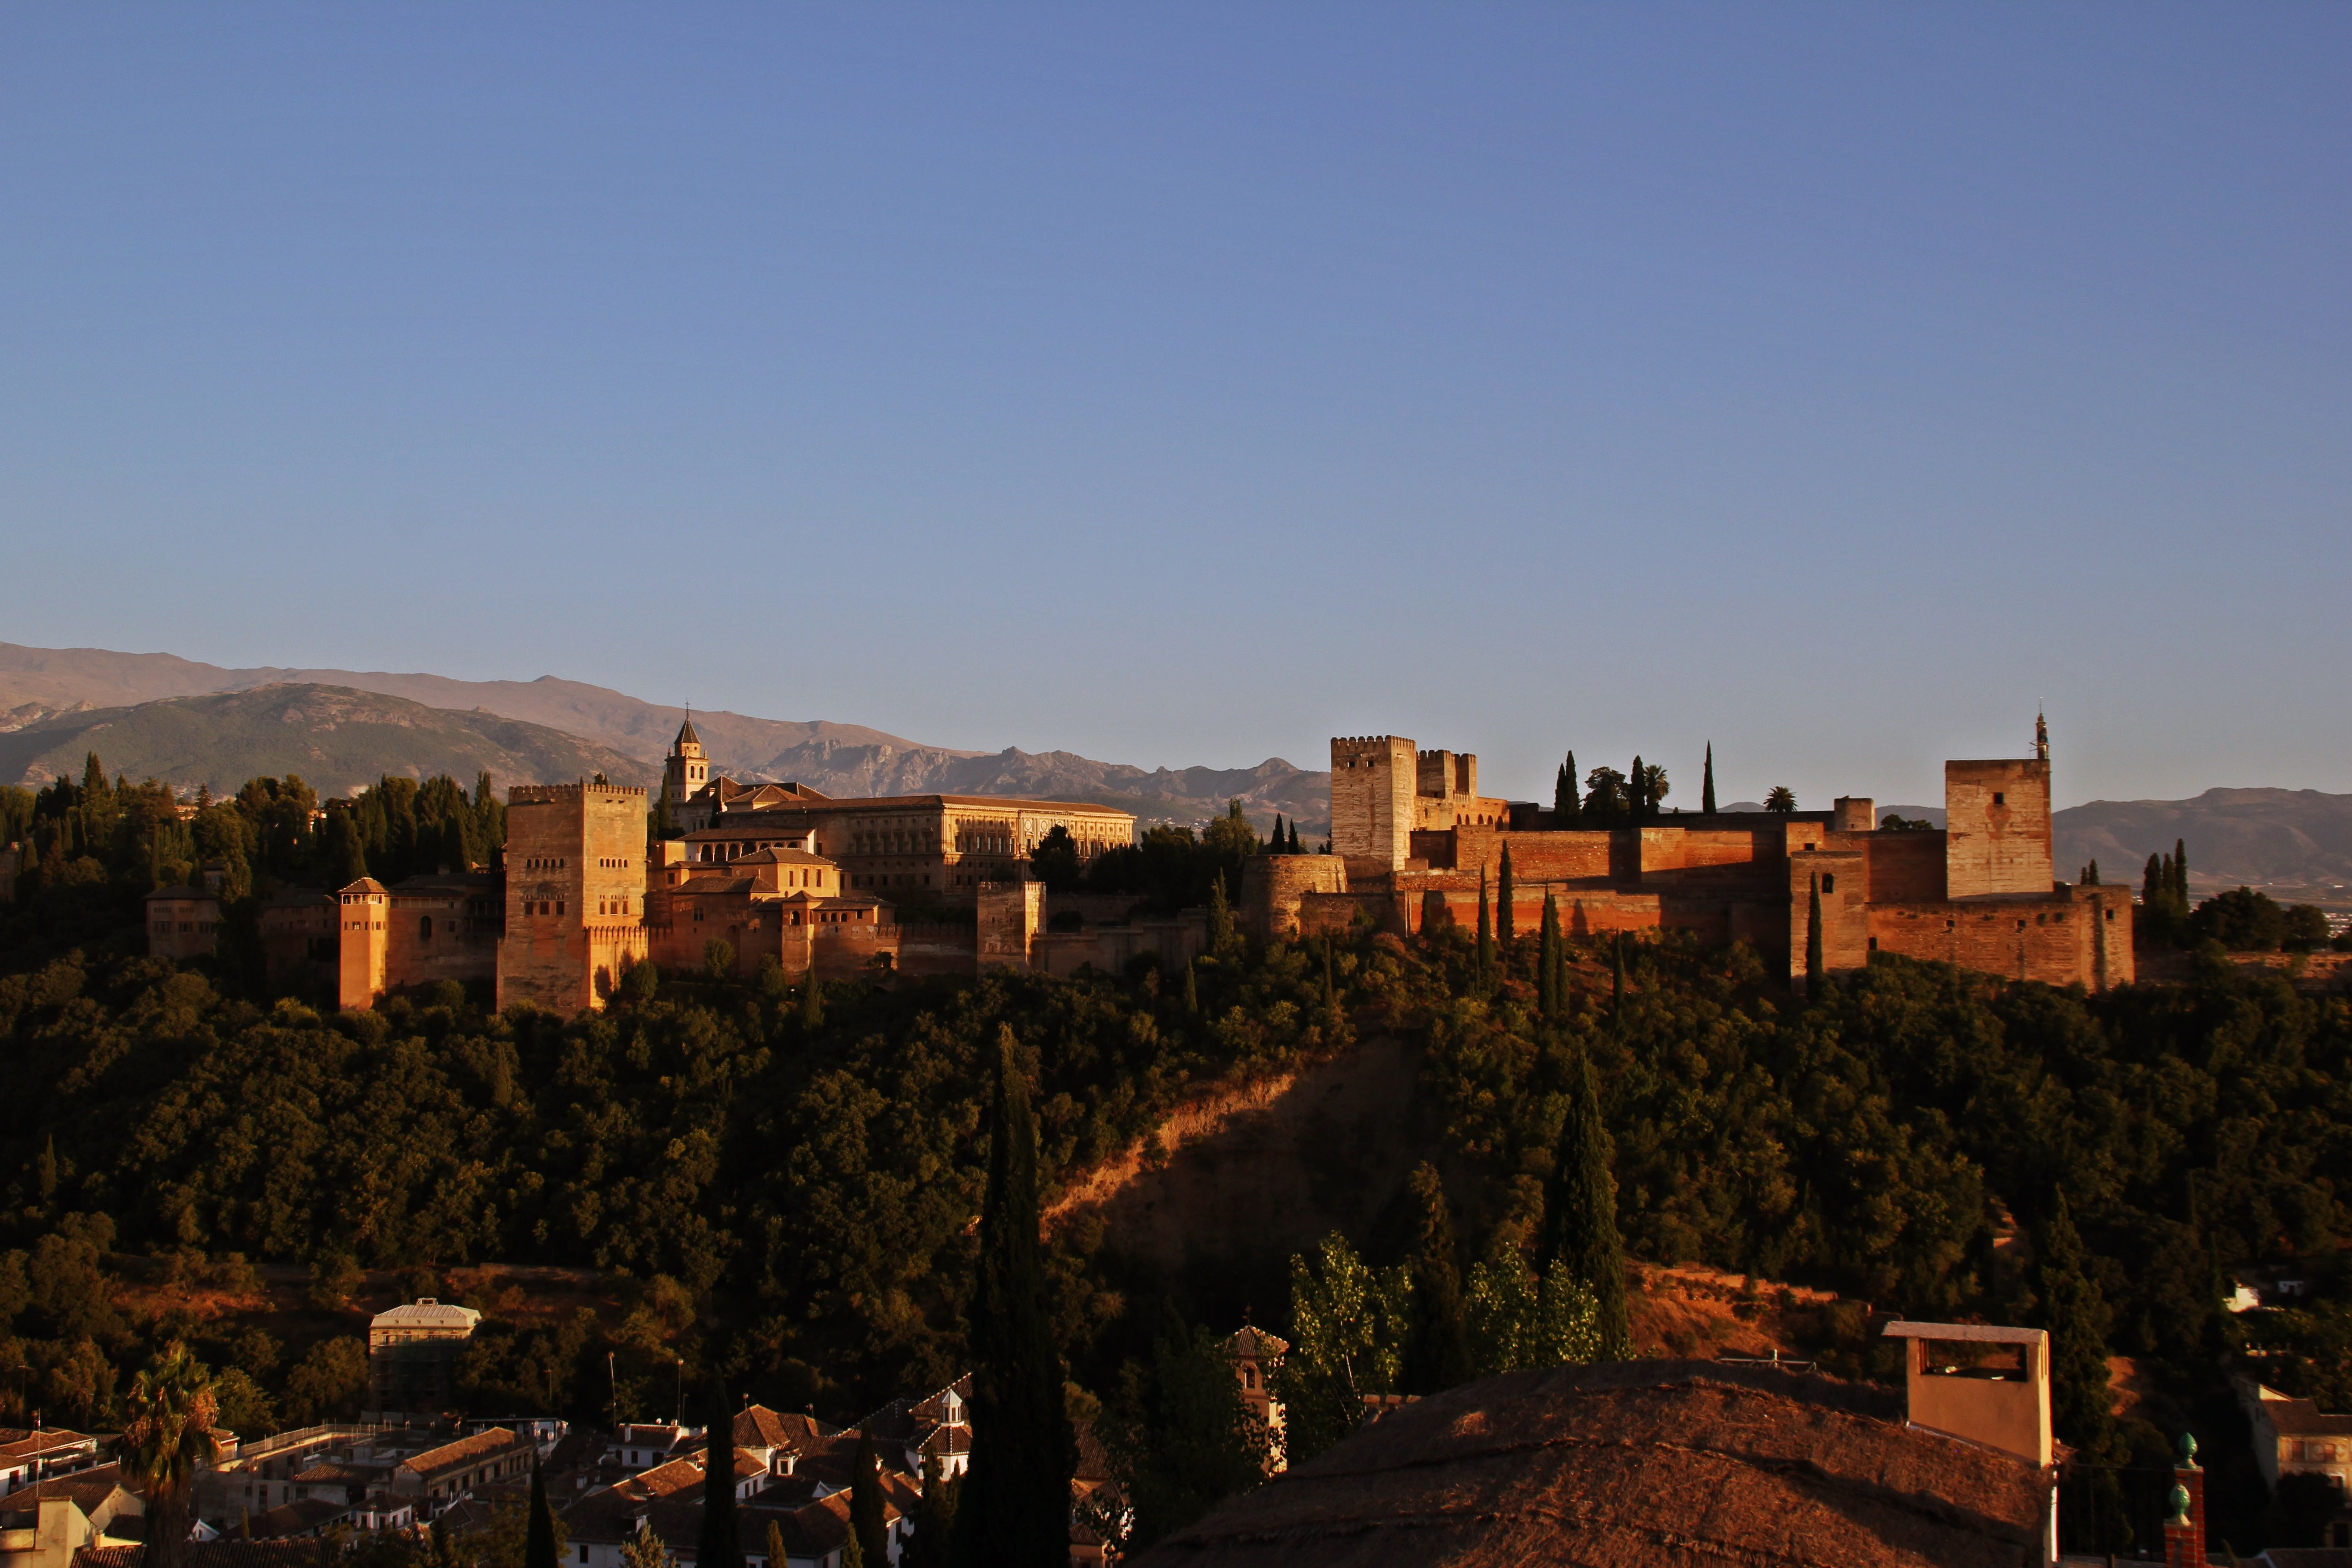 That's Alhambra in Spain. Such wonderful place with a mythical feeling.